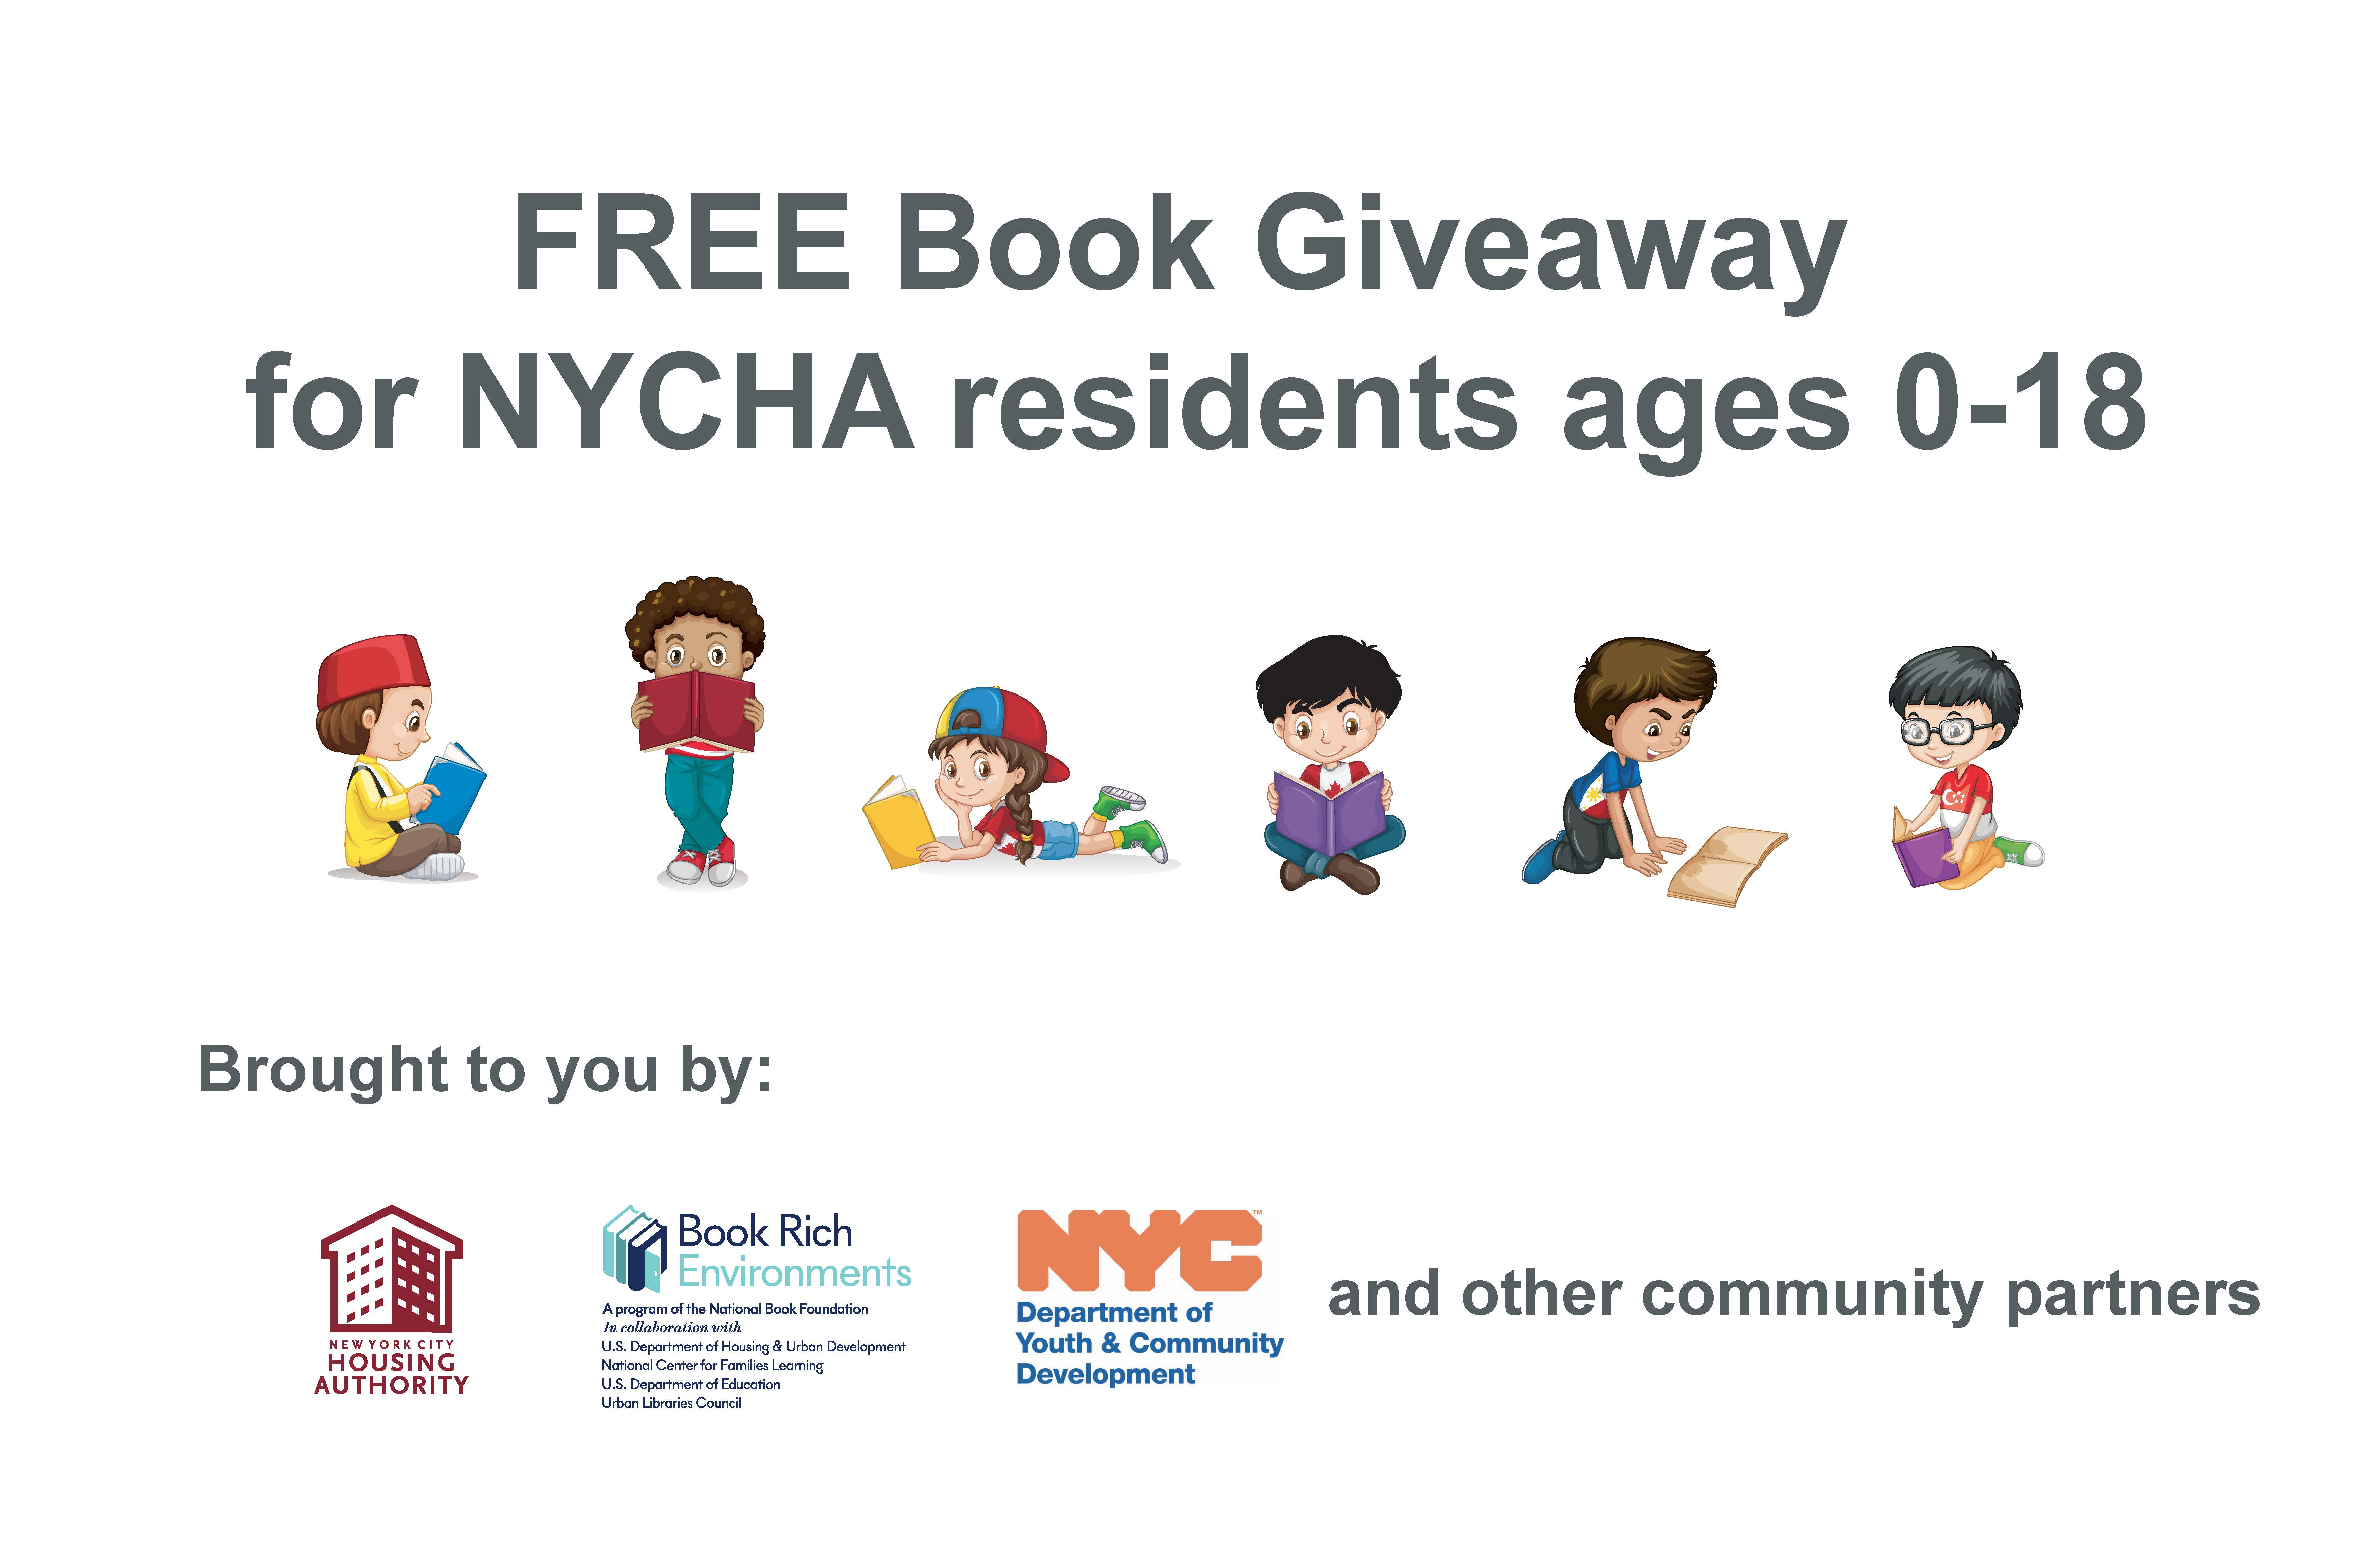 Free Books for NYCHA Residents Ages 0-18 – NYCHA Now